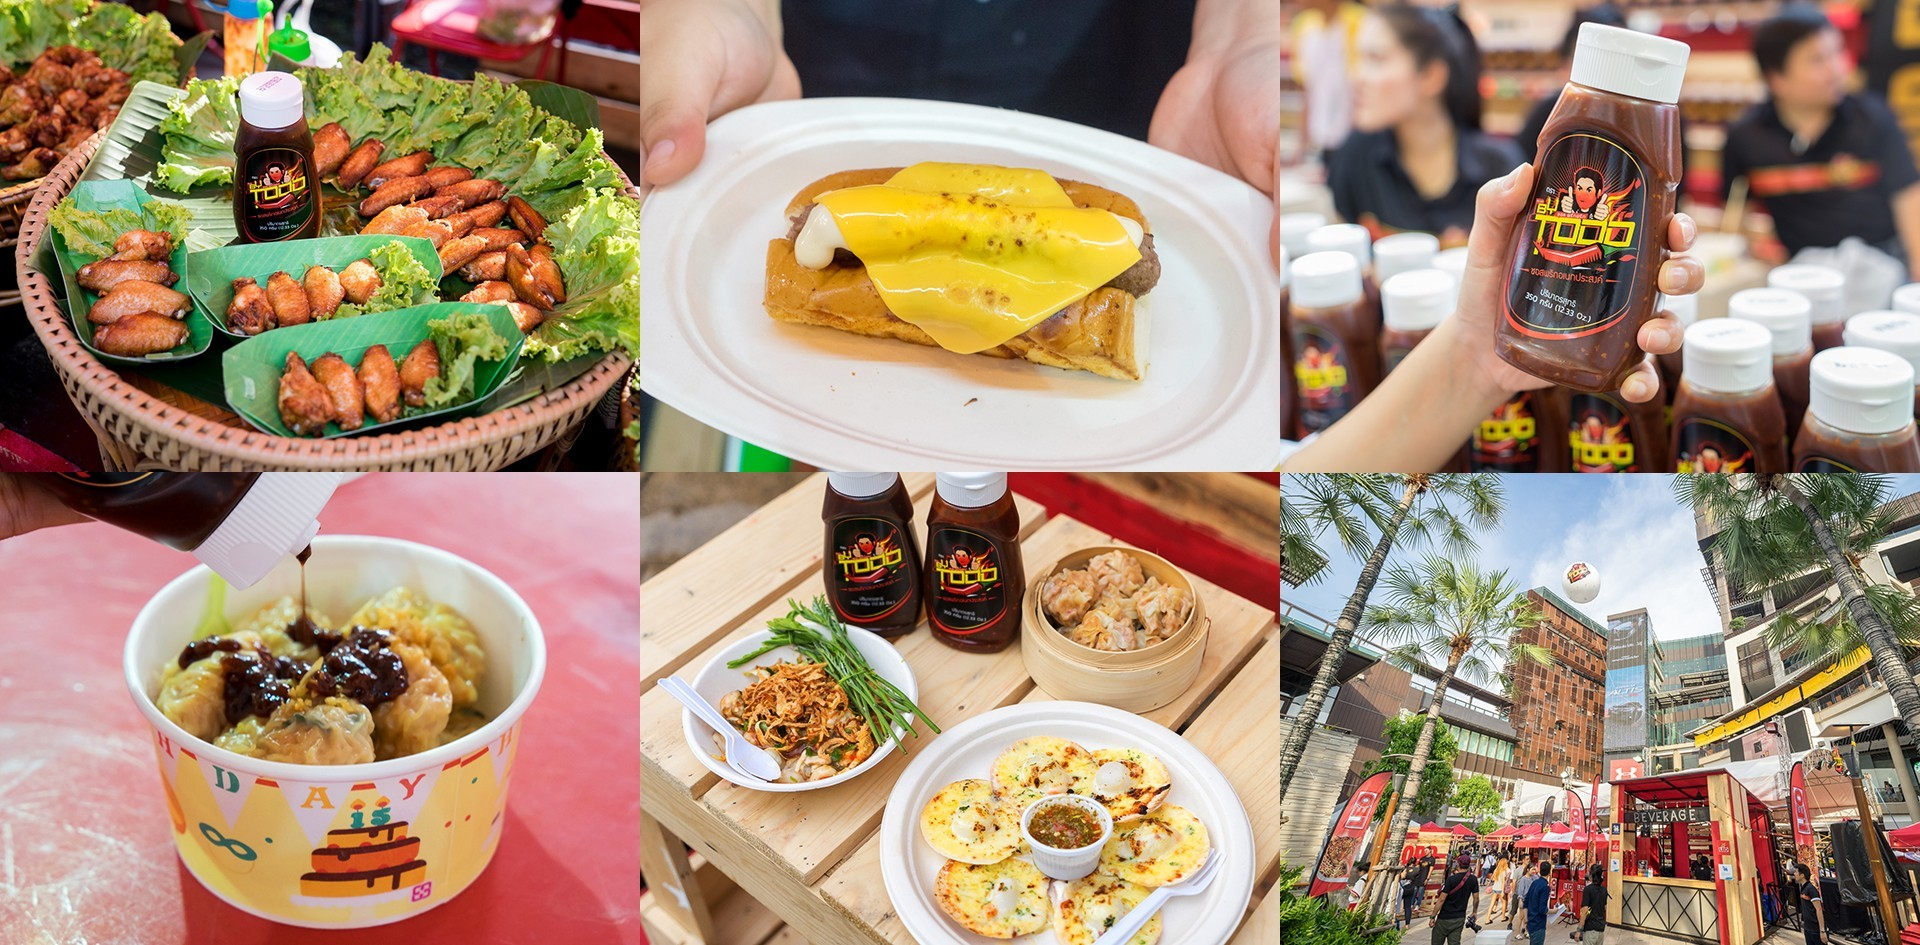 TODD FOOD FEST Made by TODD ซอสพริกพริก On Tour